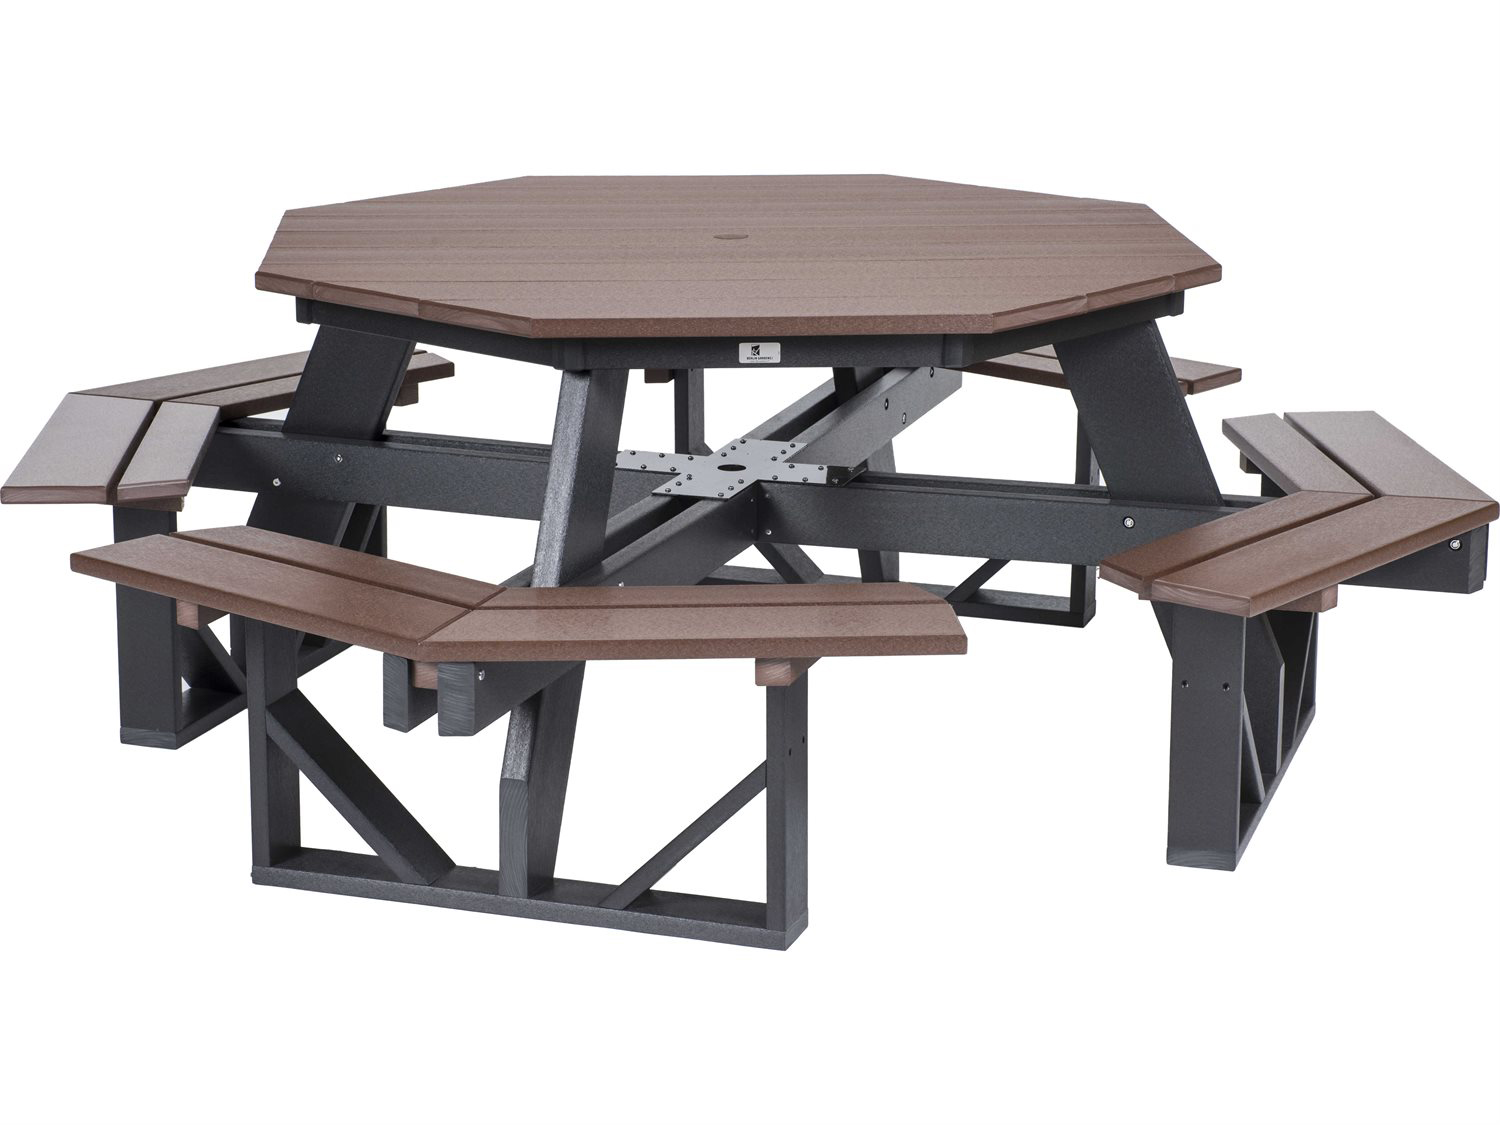 berlin gardens recycled plastic 86 w x 86 d octagon picnic table